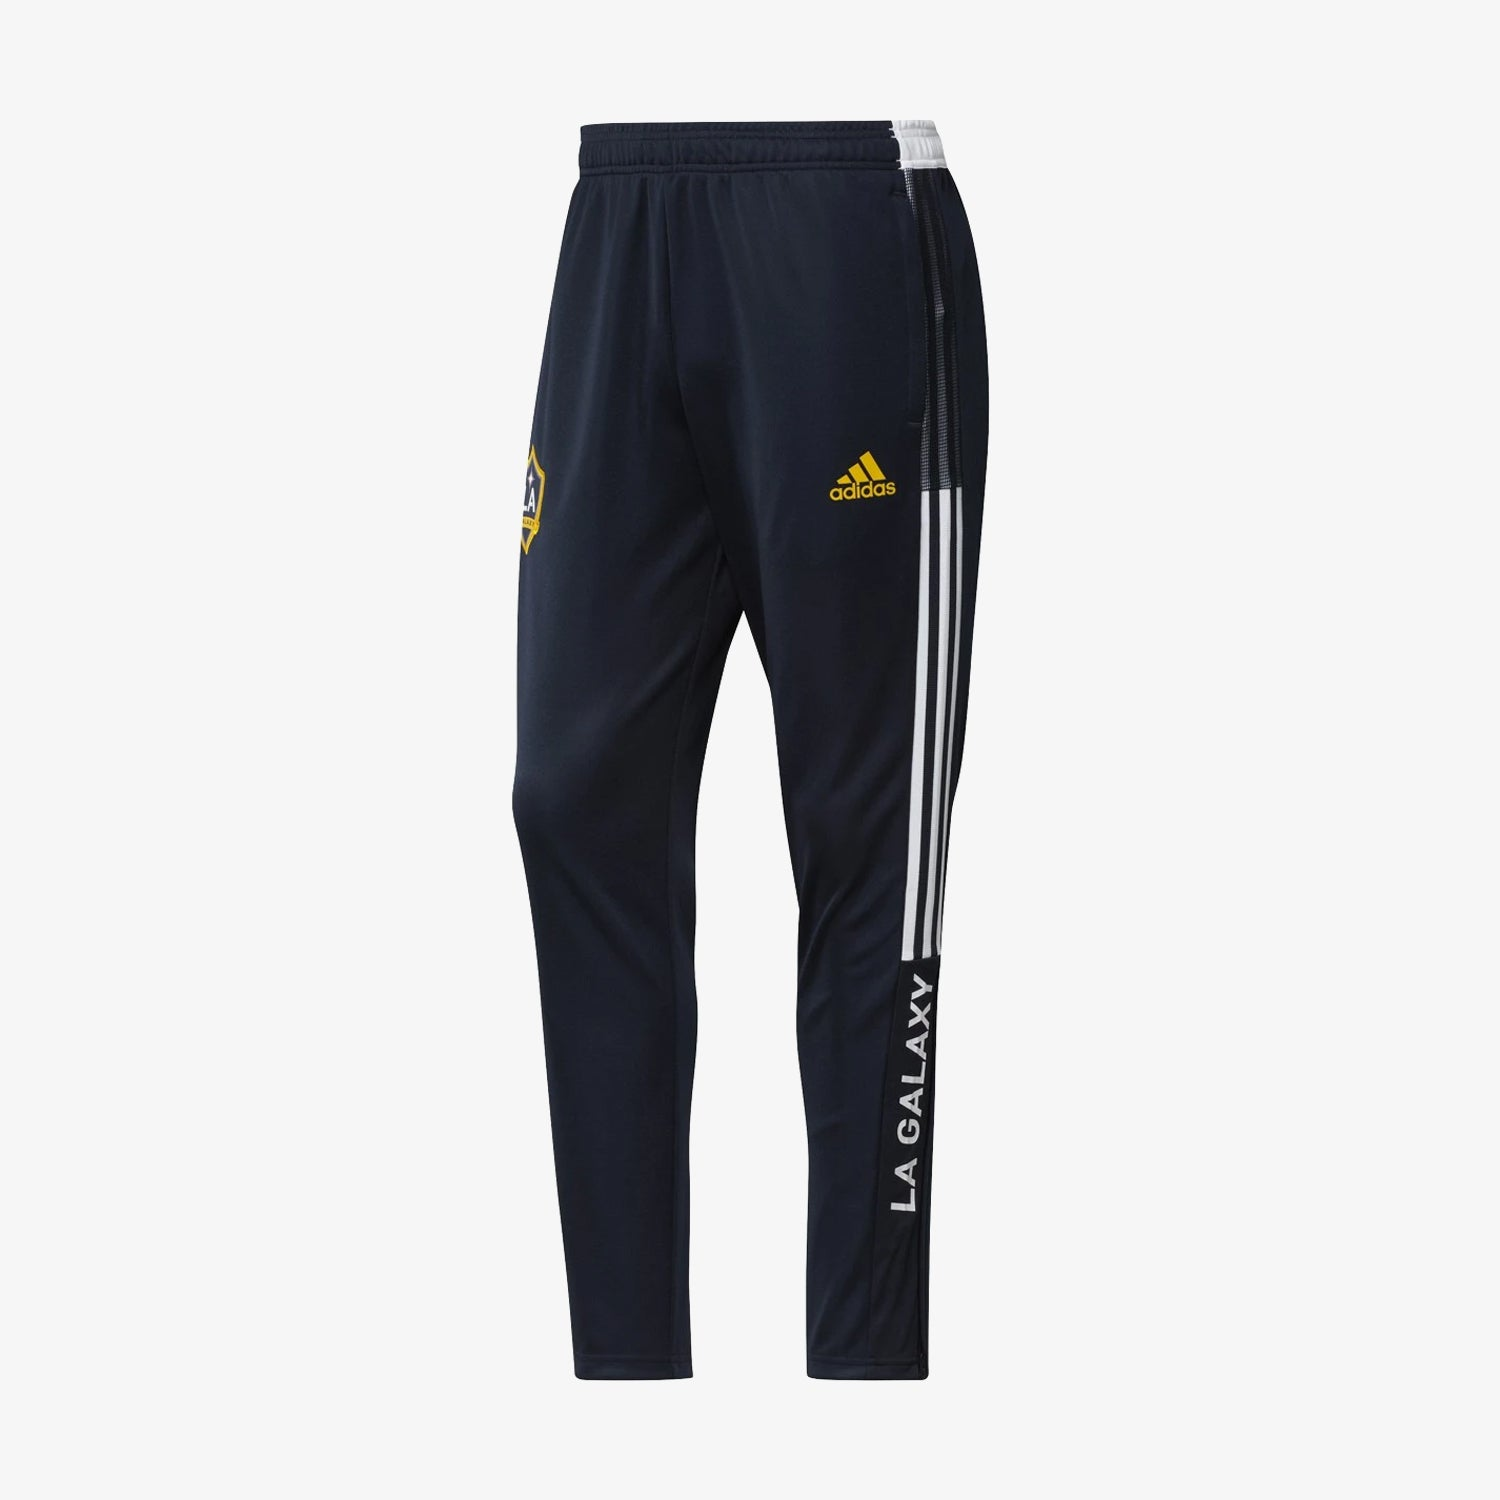 LA Galaxy Travel Pant 21/22